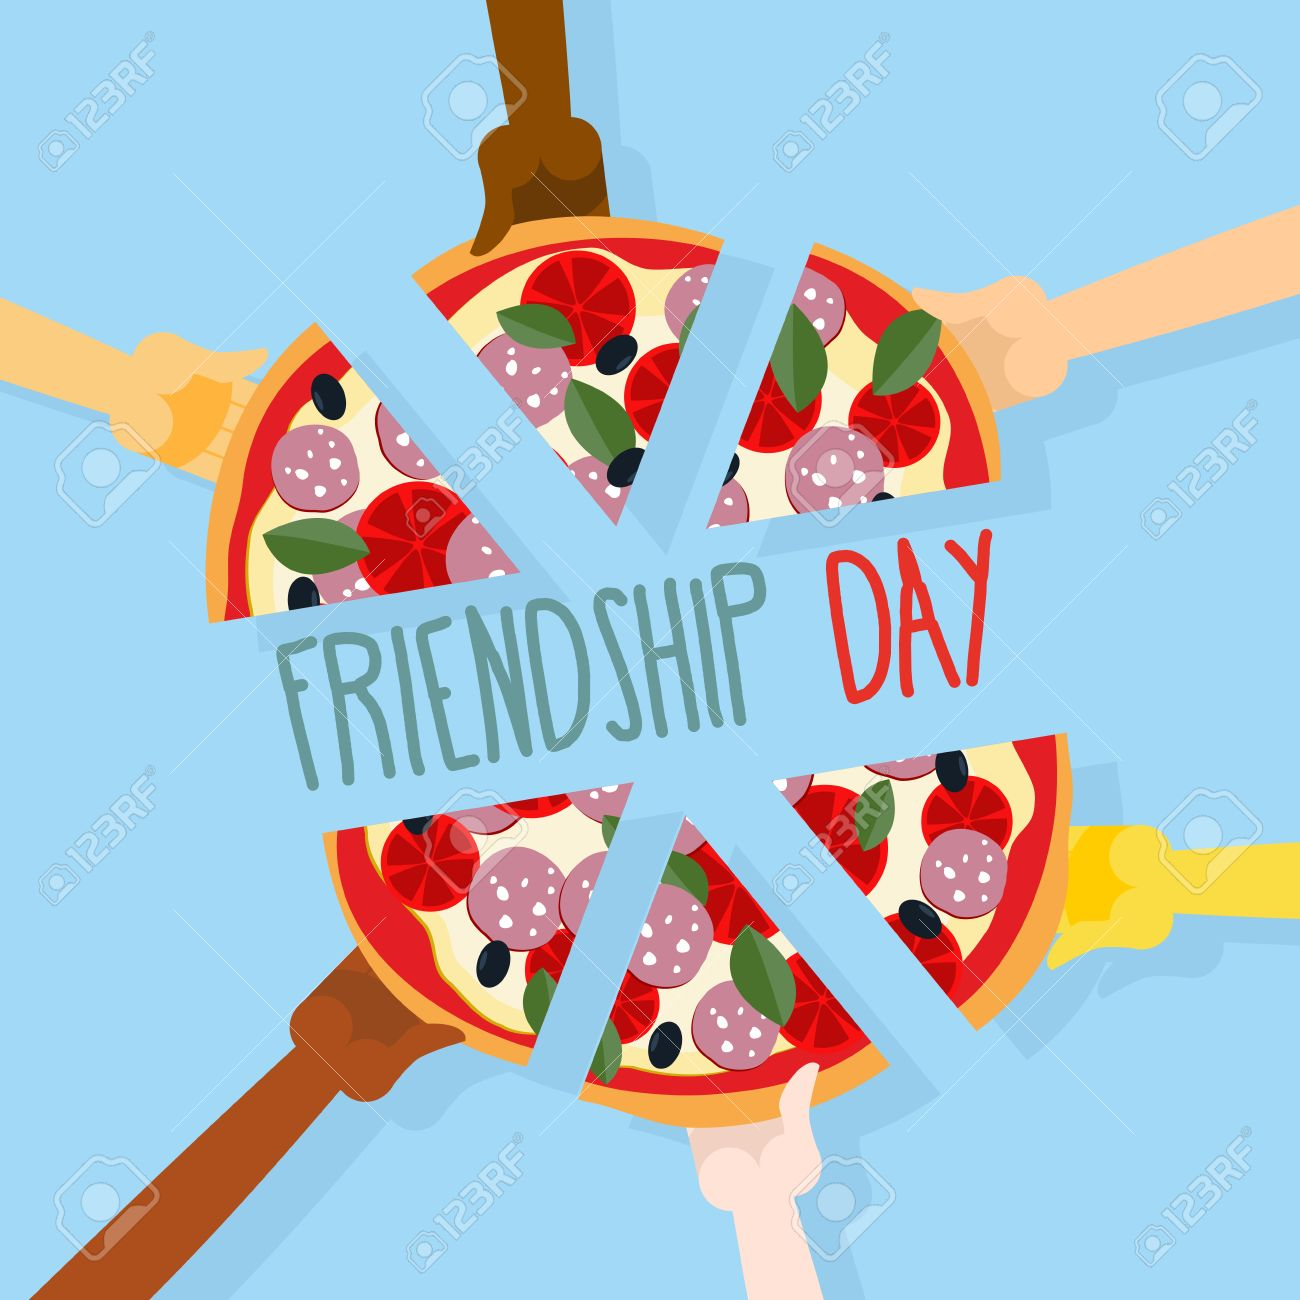 244 International Friends Day Stock Vector Illustration And ...